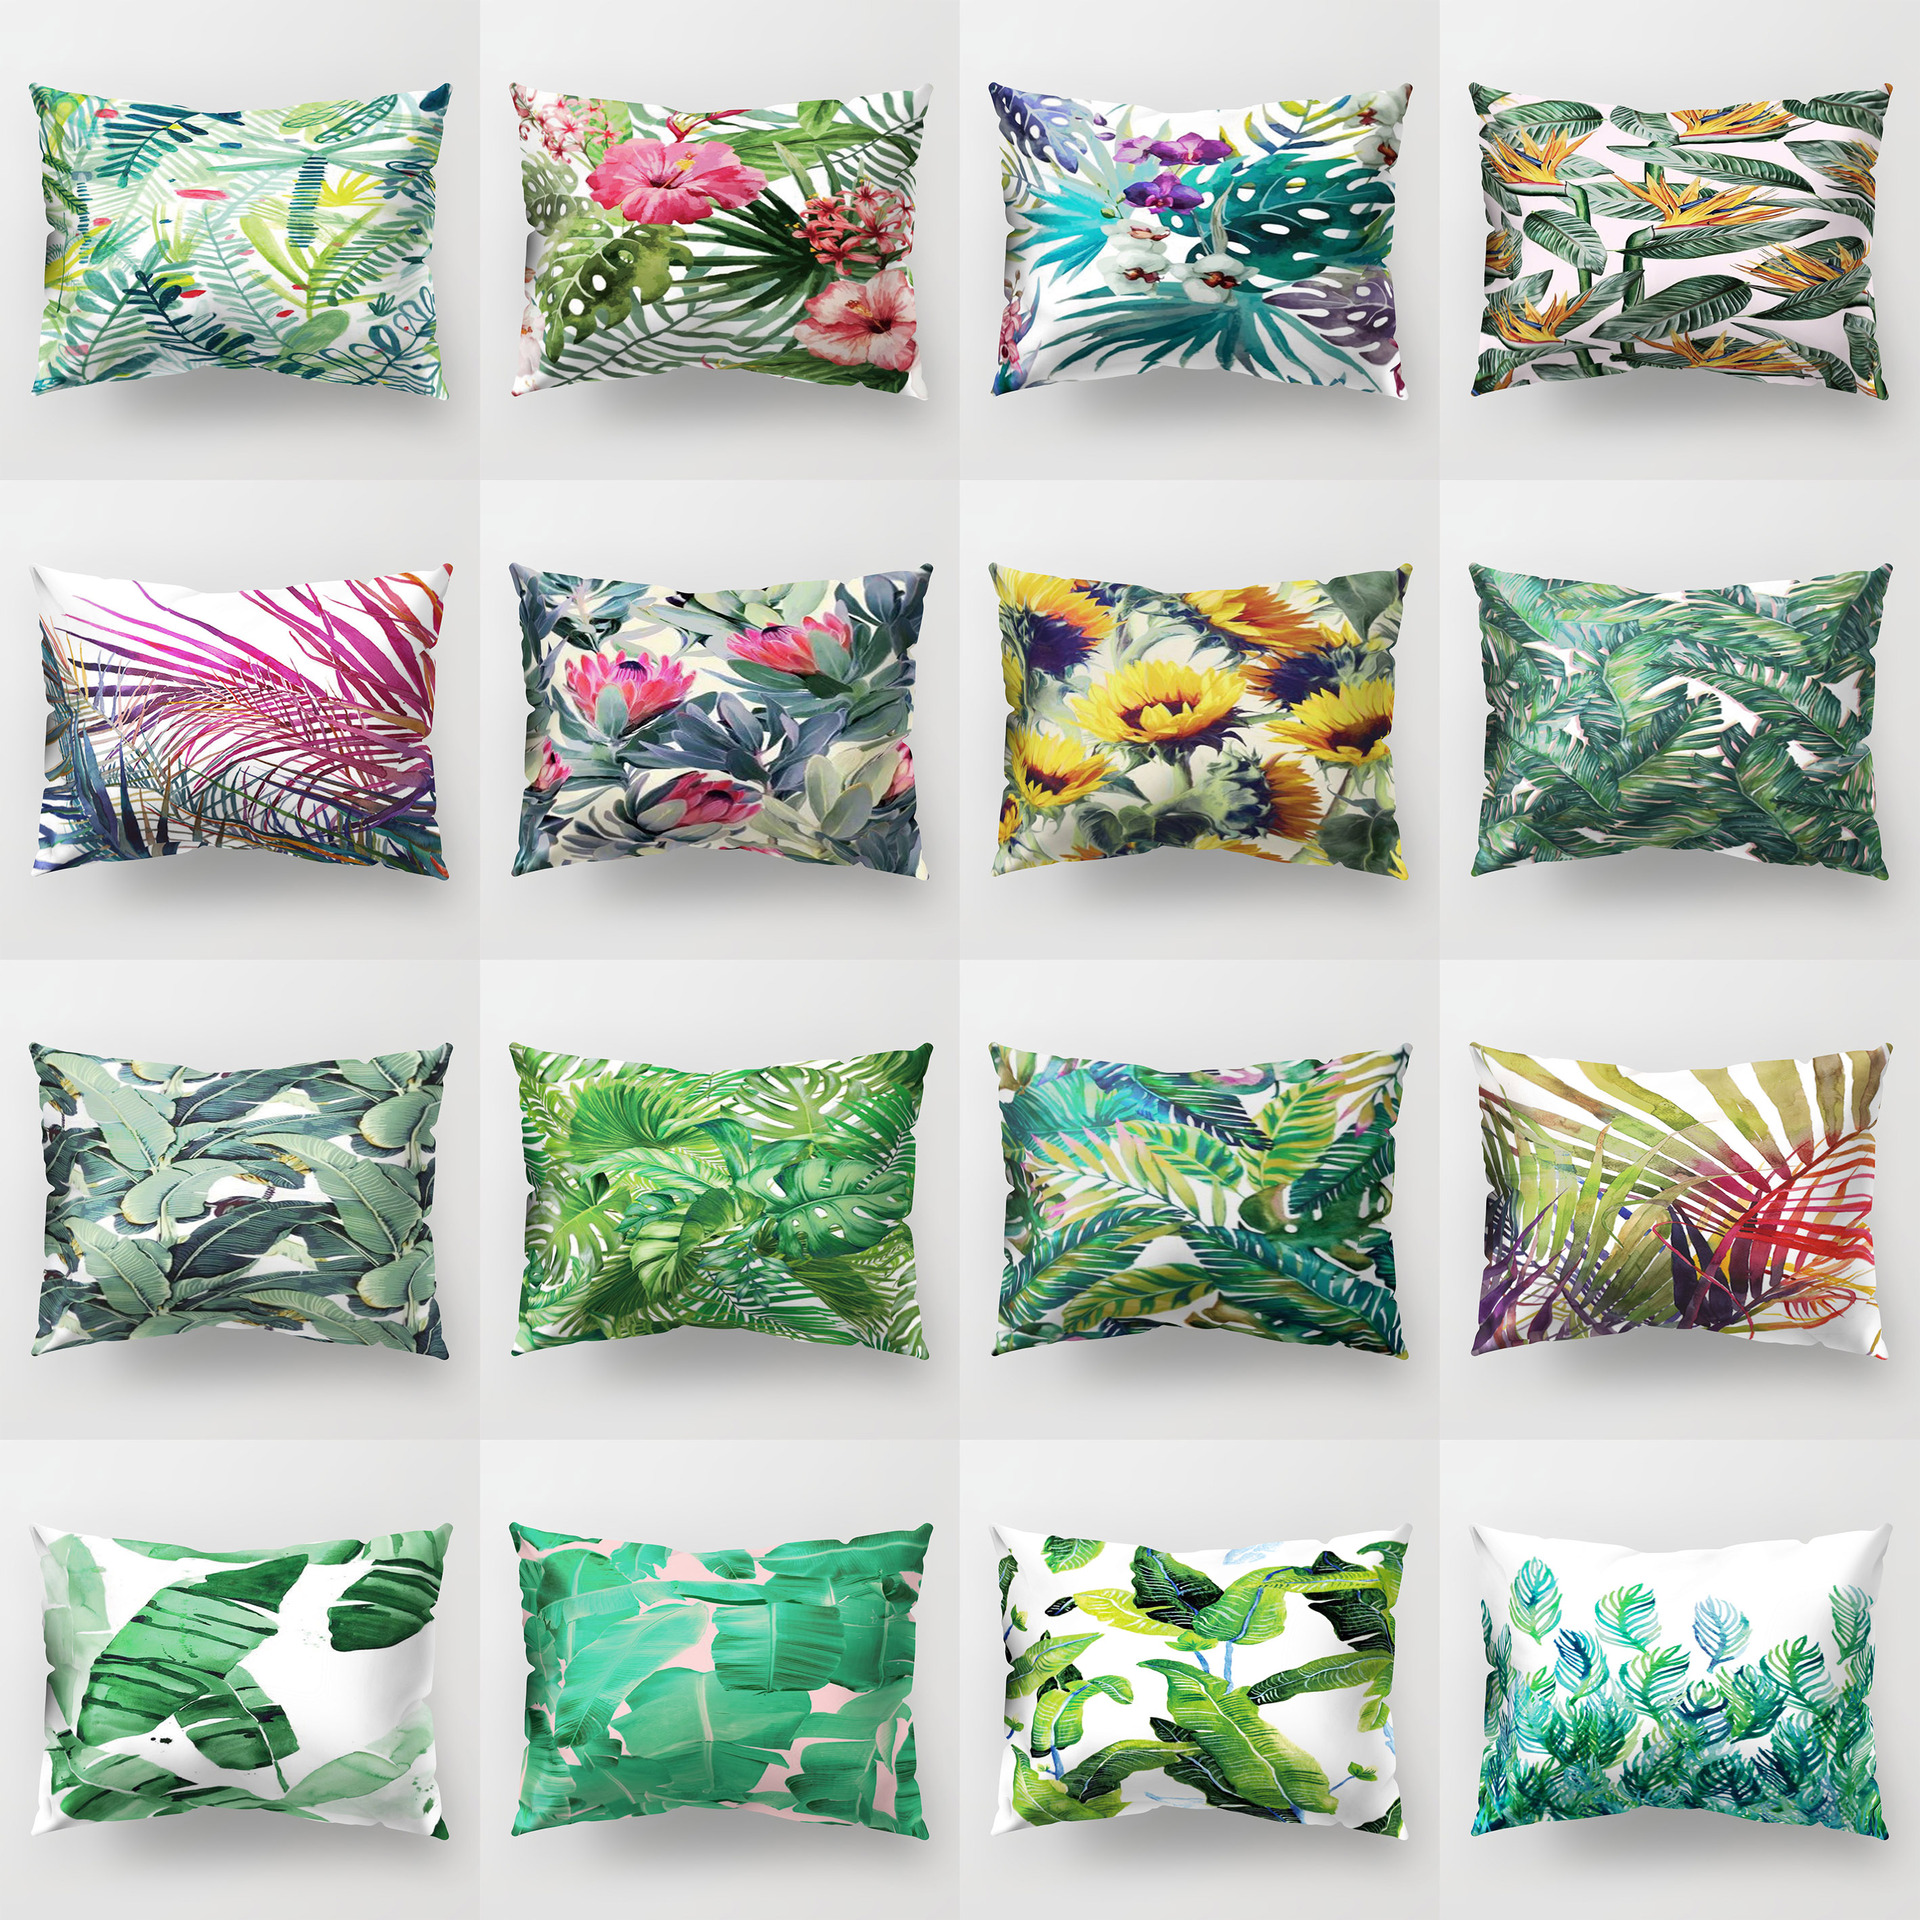 Green Leaf Printiing <font><b>Pillow</b></font> <font><b>Case</b></font> Home Decorative Pillowcases Cover Office Rectangle 30*50cm image